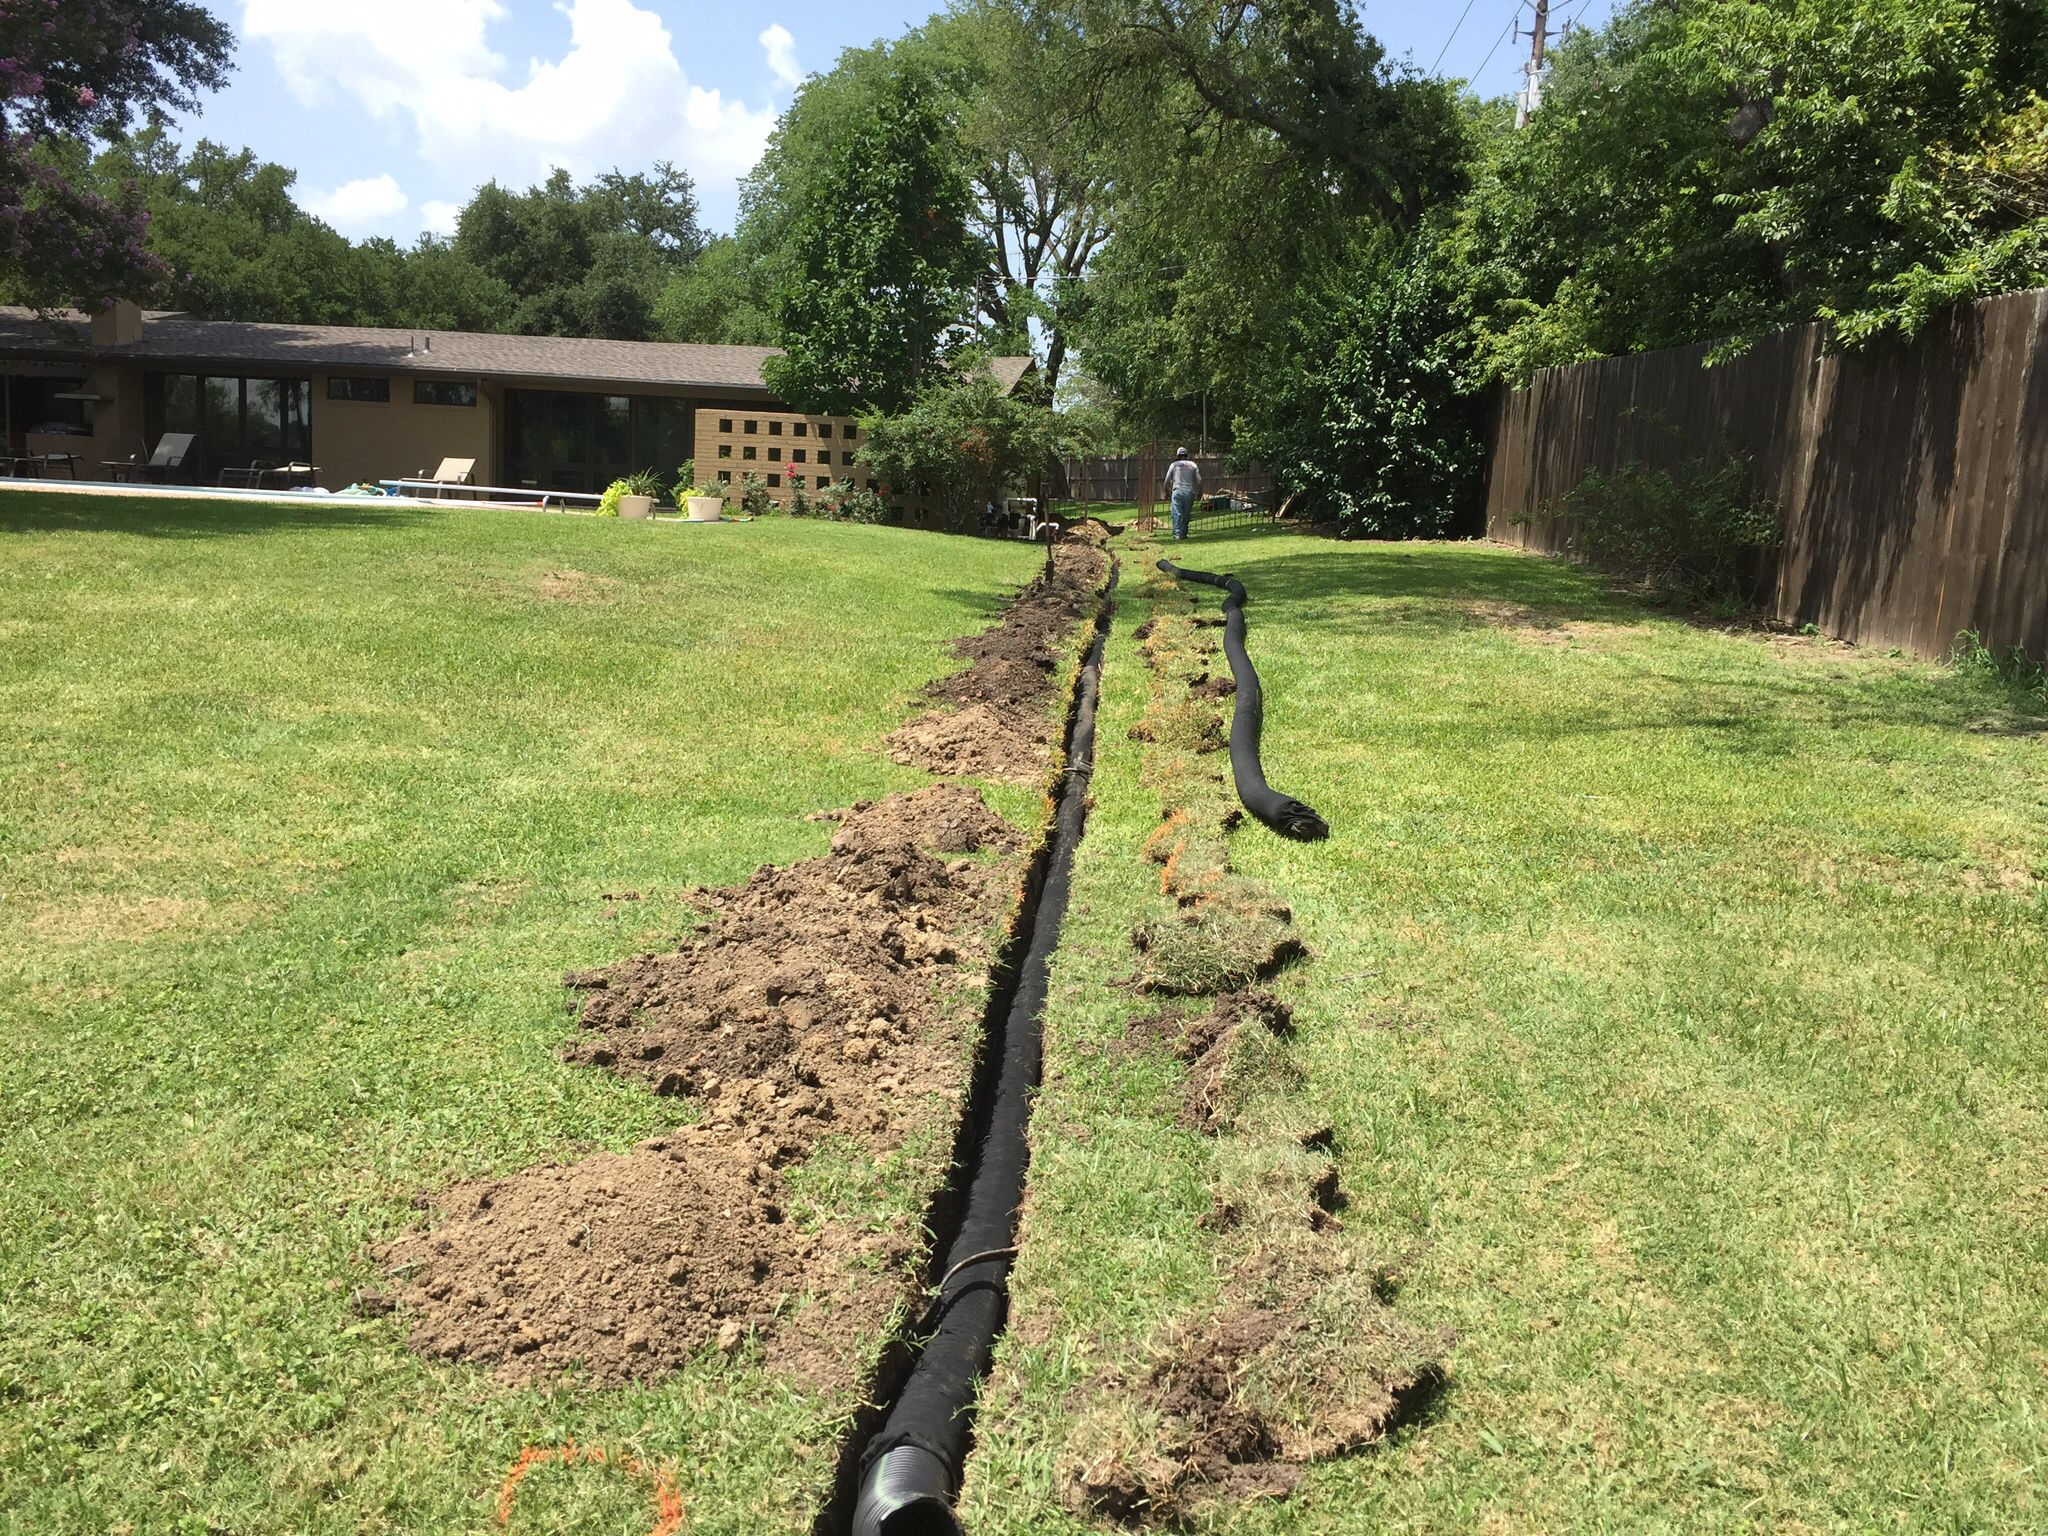 Installing a drainage system